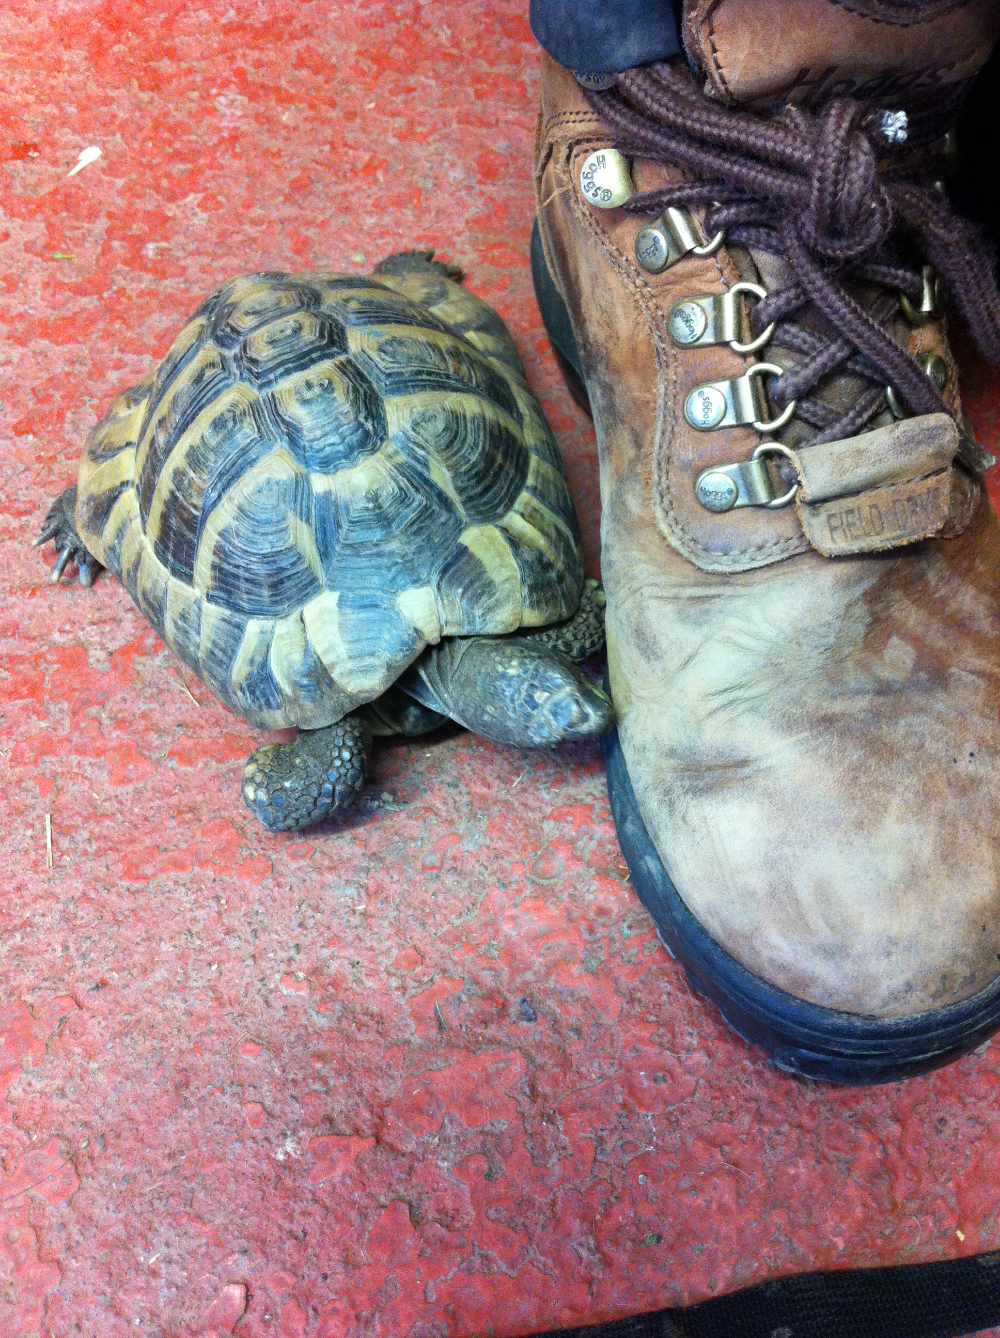 James' foot and a tiny tortoise!